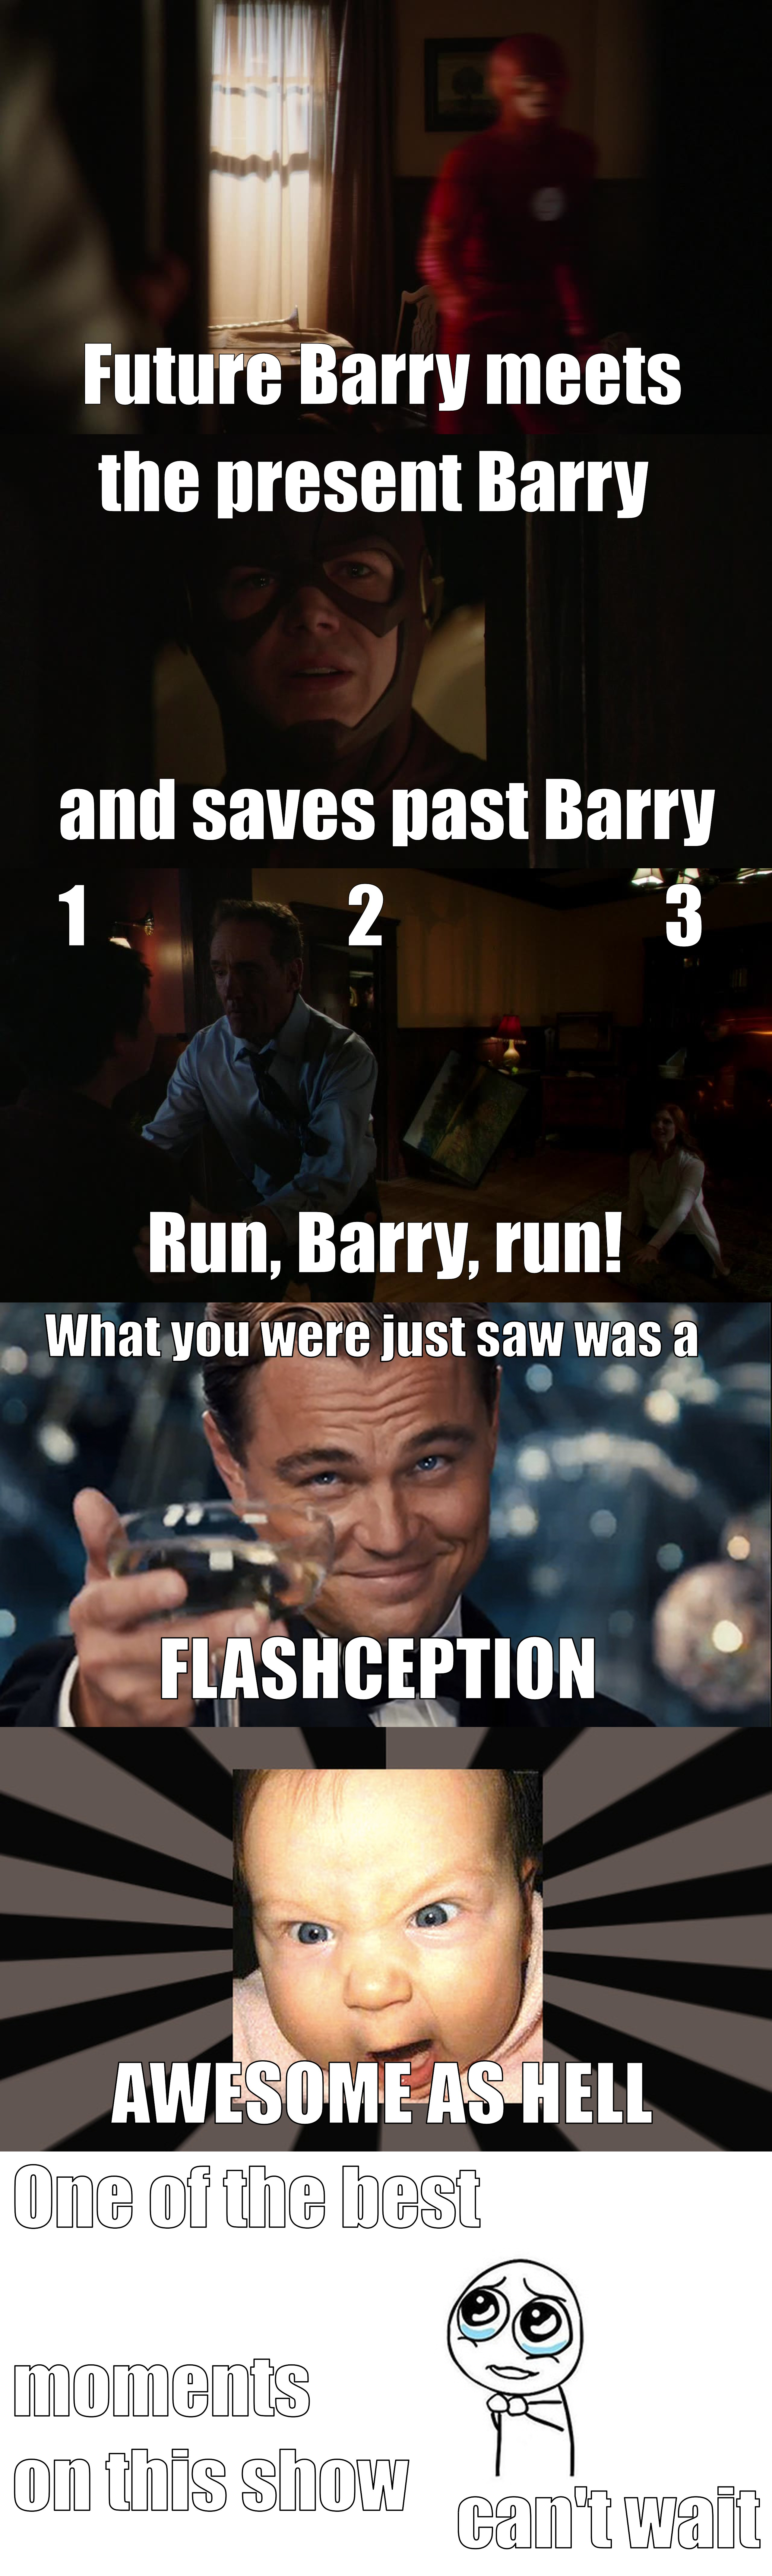 FLASHCEPTION!!! (or barryception, barryption)